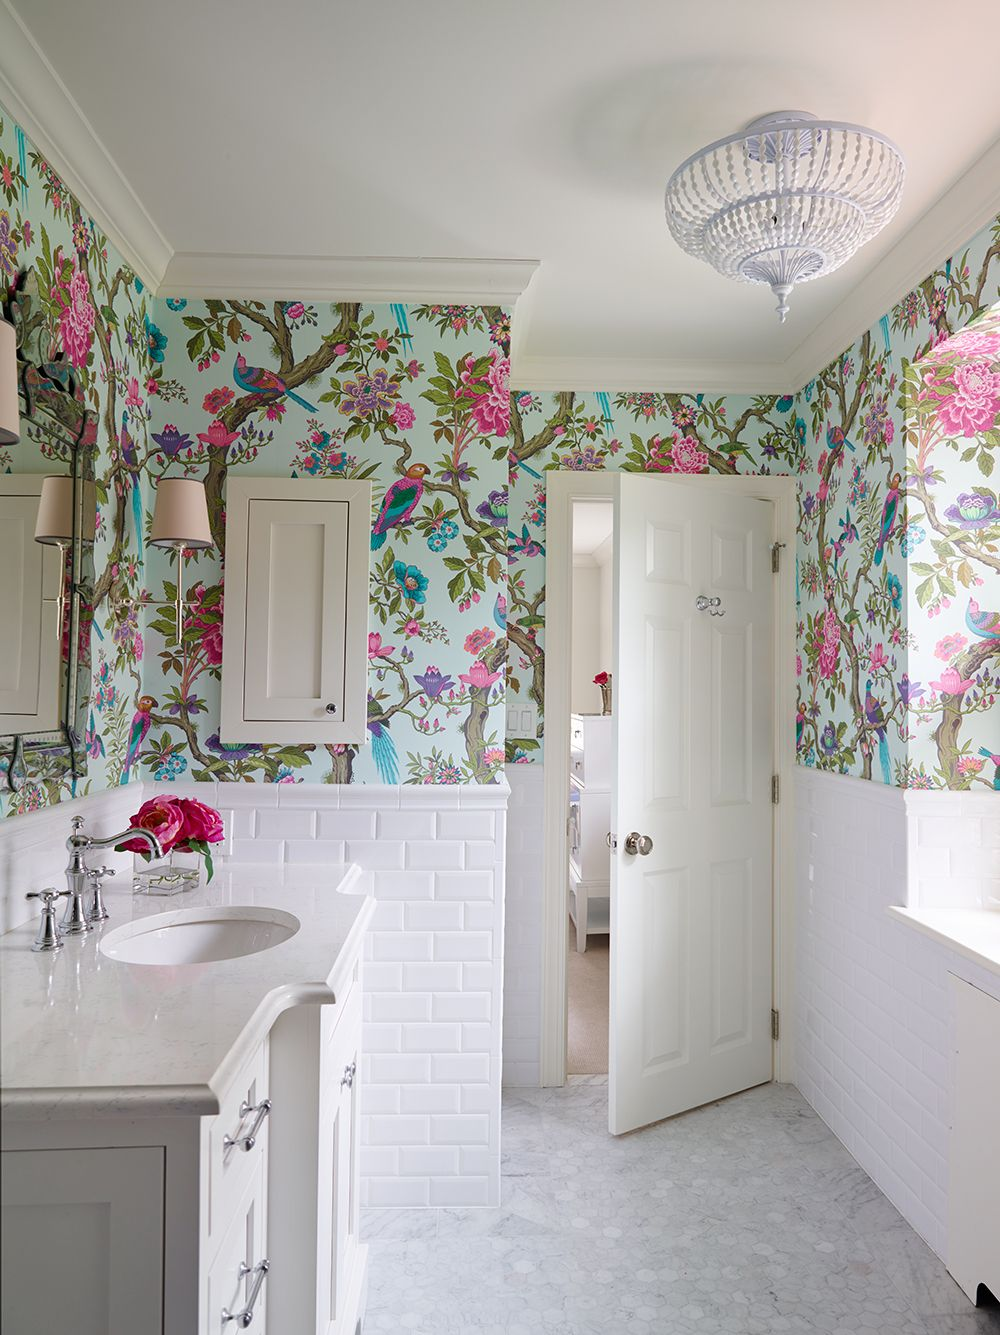 bold feminine little girls ensuite bathroom featuring this floral bold feminine little girls ensuite bathroom featuring this floral wallpaper by cole and son interior